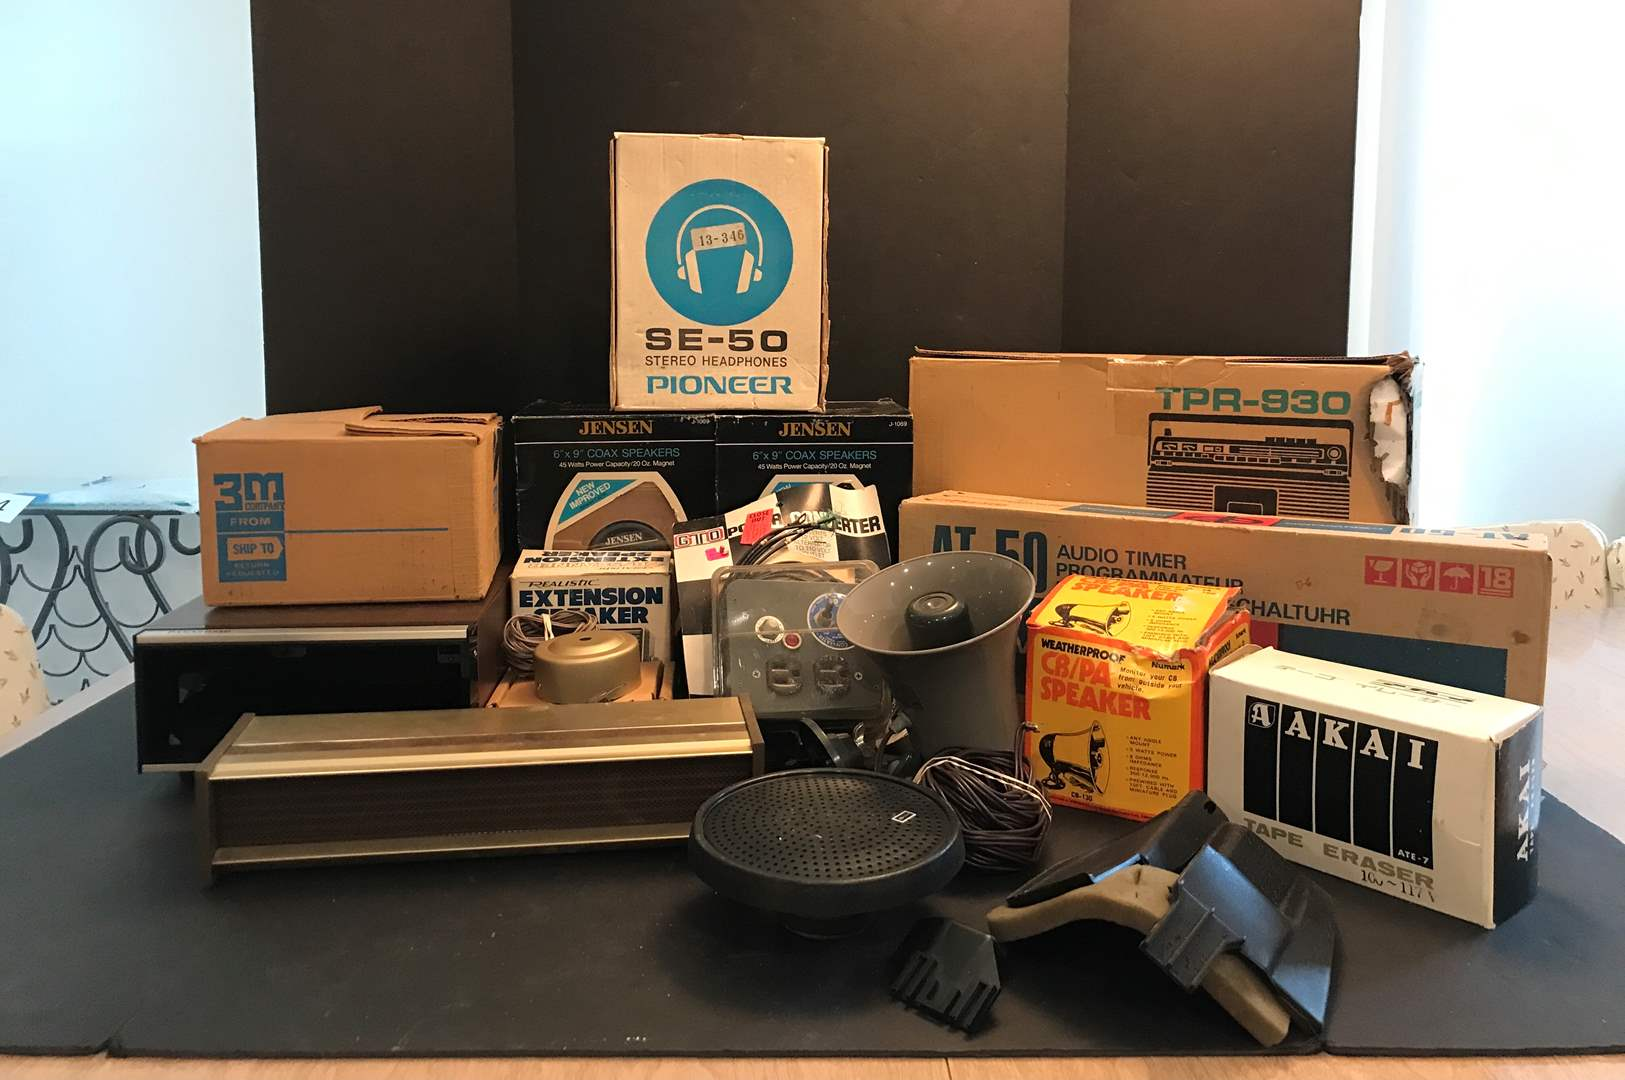 Lot # 220 - Collection of Vintage Stereo Equipment, Pioneer Headphones Model #SE-50   (main image)